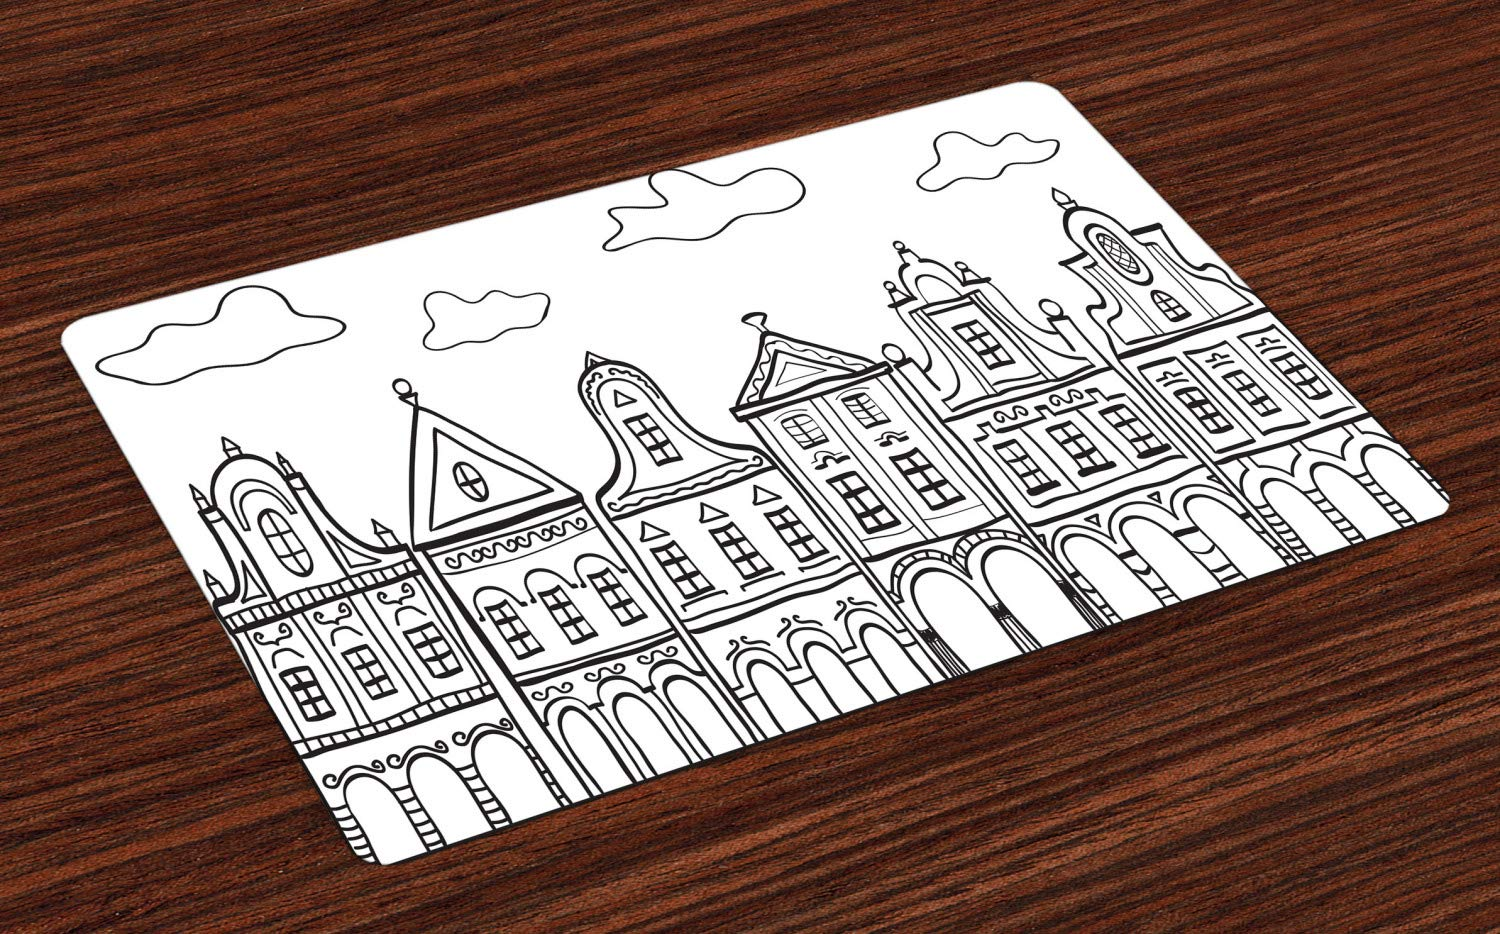 Ambesonne Amsterdam Place Mats Set of 4, Doodle Monochrome Illustration of Old Decorated Village Houses in Holland, Washable Fabric Placemats for Dining Room Kitchen Table Decoration, Black and White